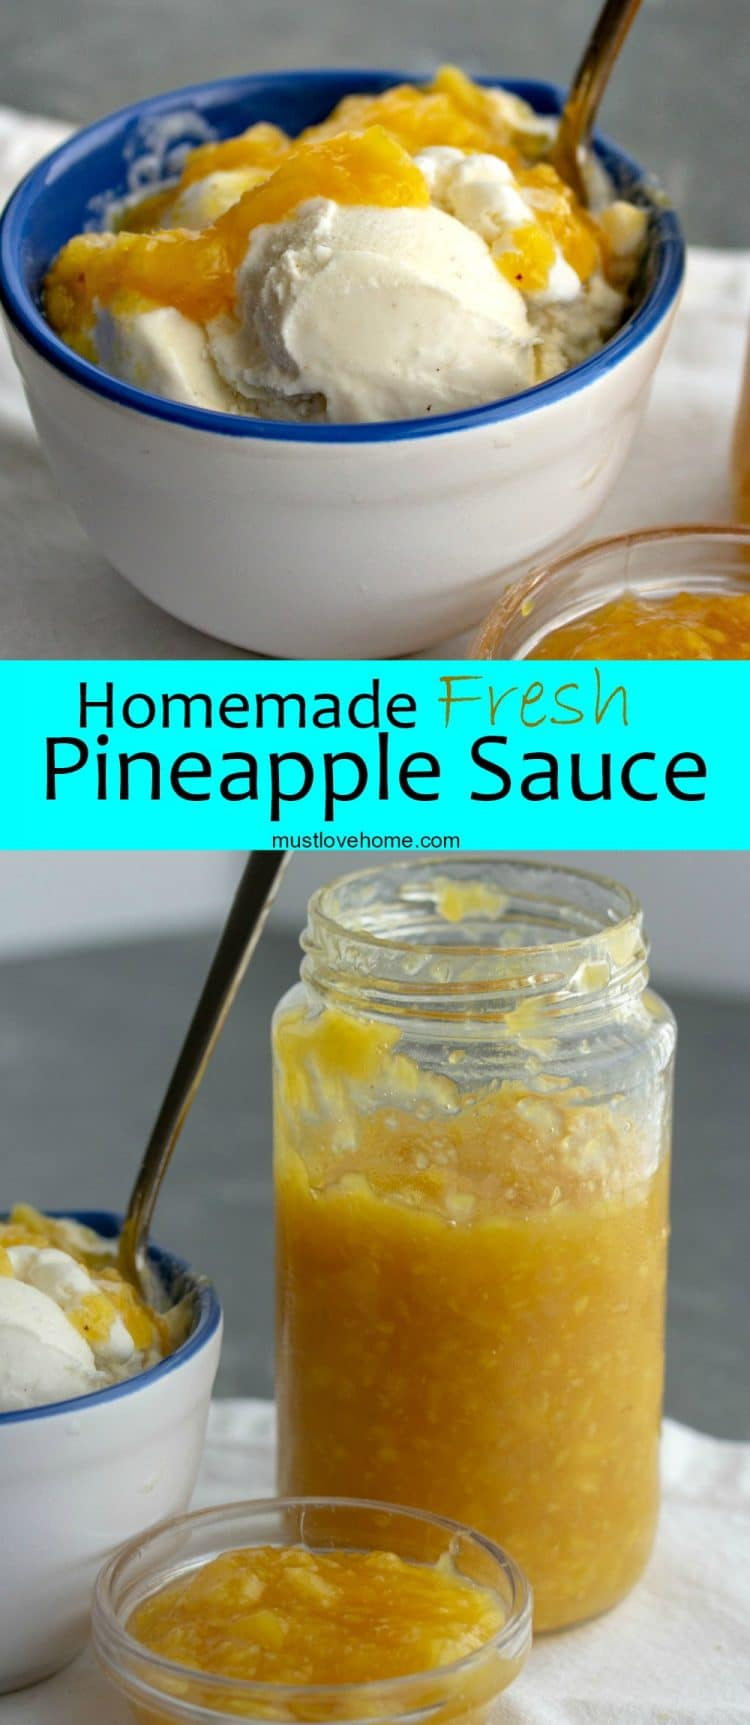 Thick, sweet and chunky Fresh Homemade Pineapple Sauce will bring tropical flavor as a topper for your next ice cream sundae or pound cake.